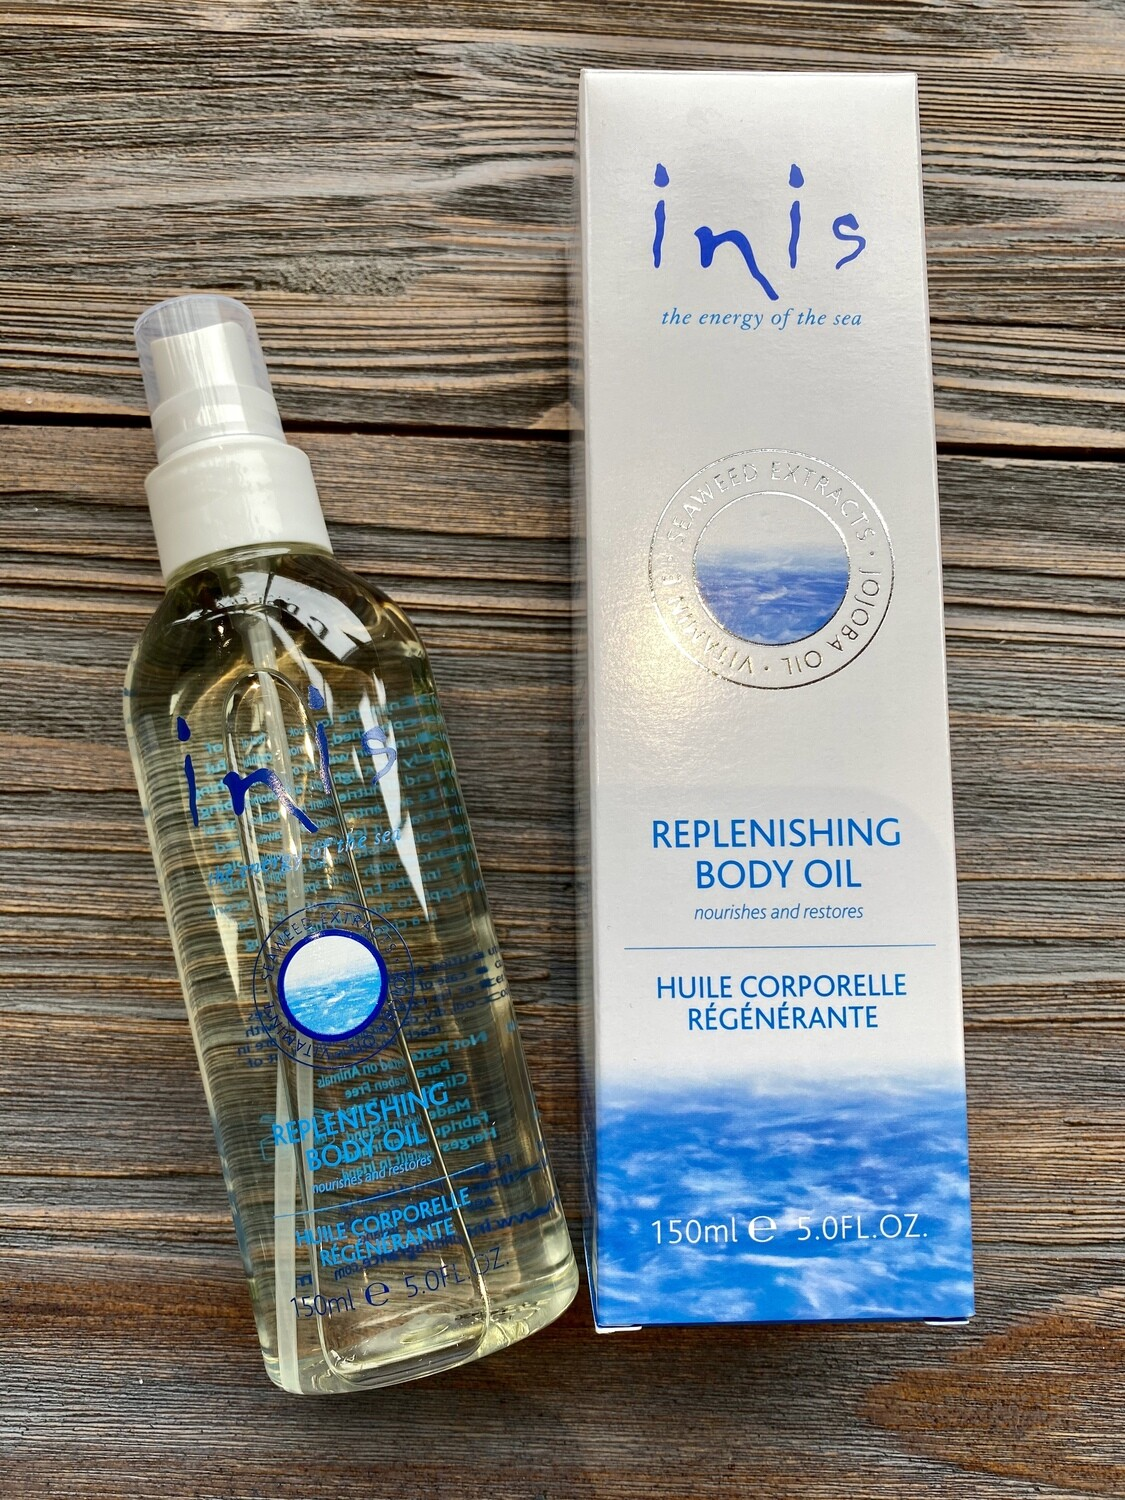 Inis Body Oil